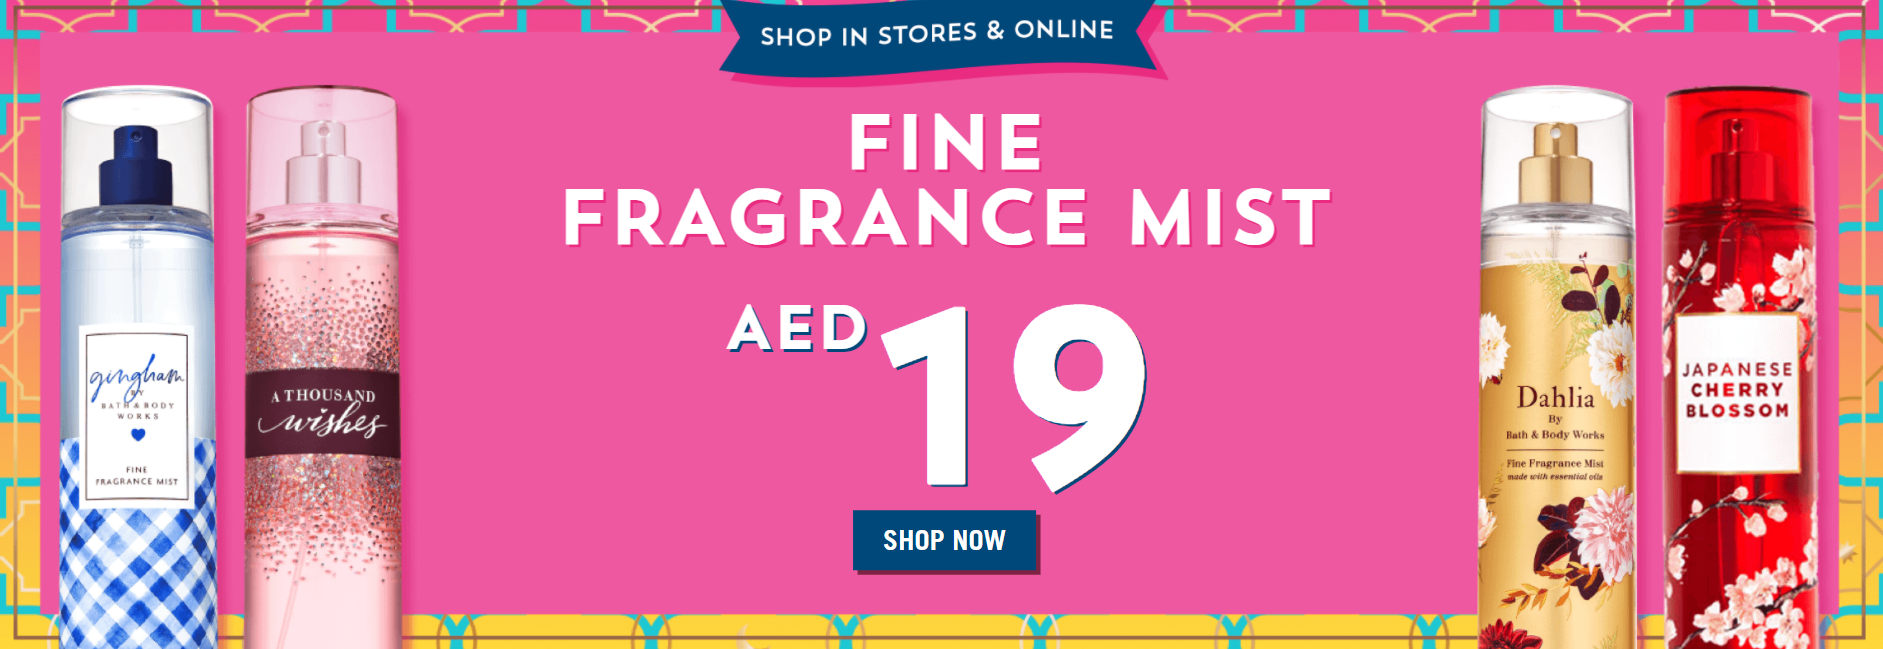 Bath & Body Works   Fragrance Mist AED19 + 5% Extra OFF With Code: G522   >> Shop Now   shyleeshop